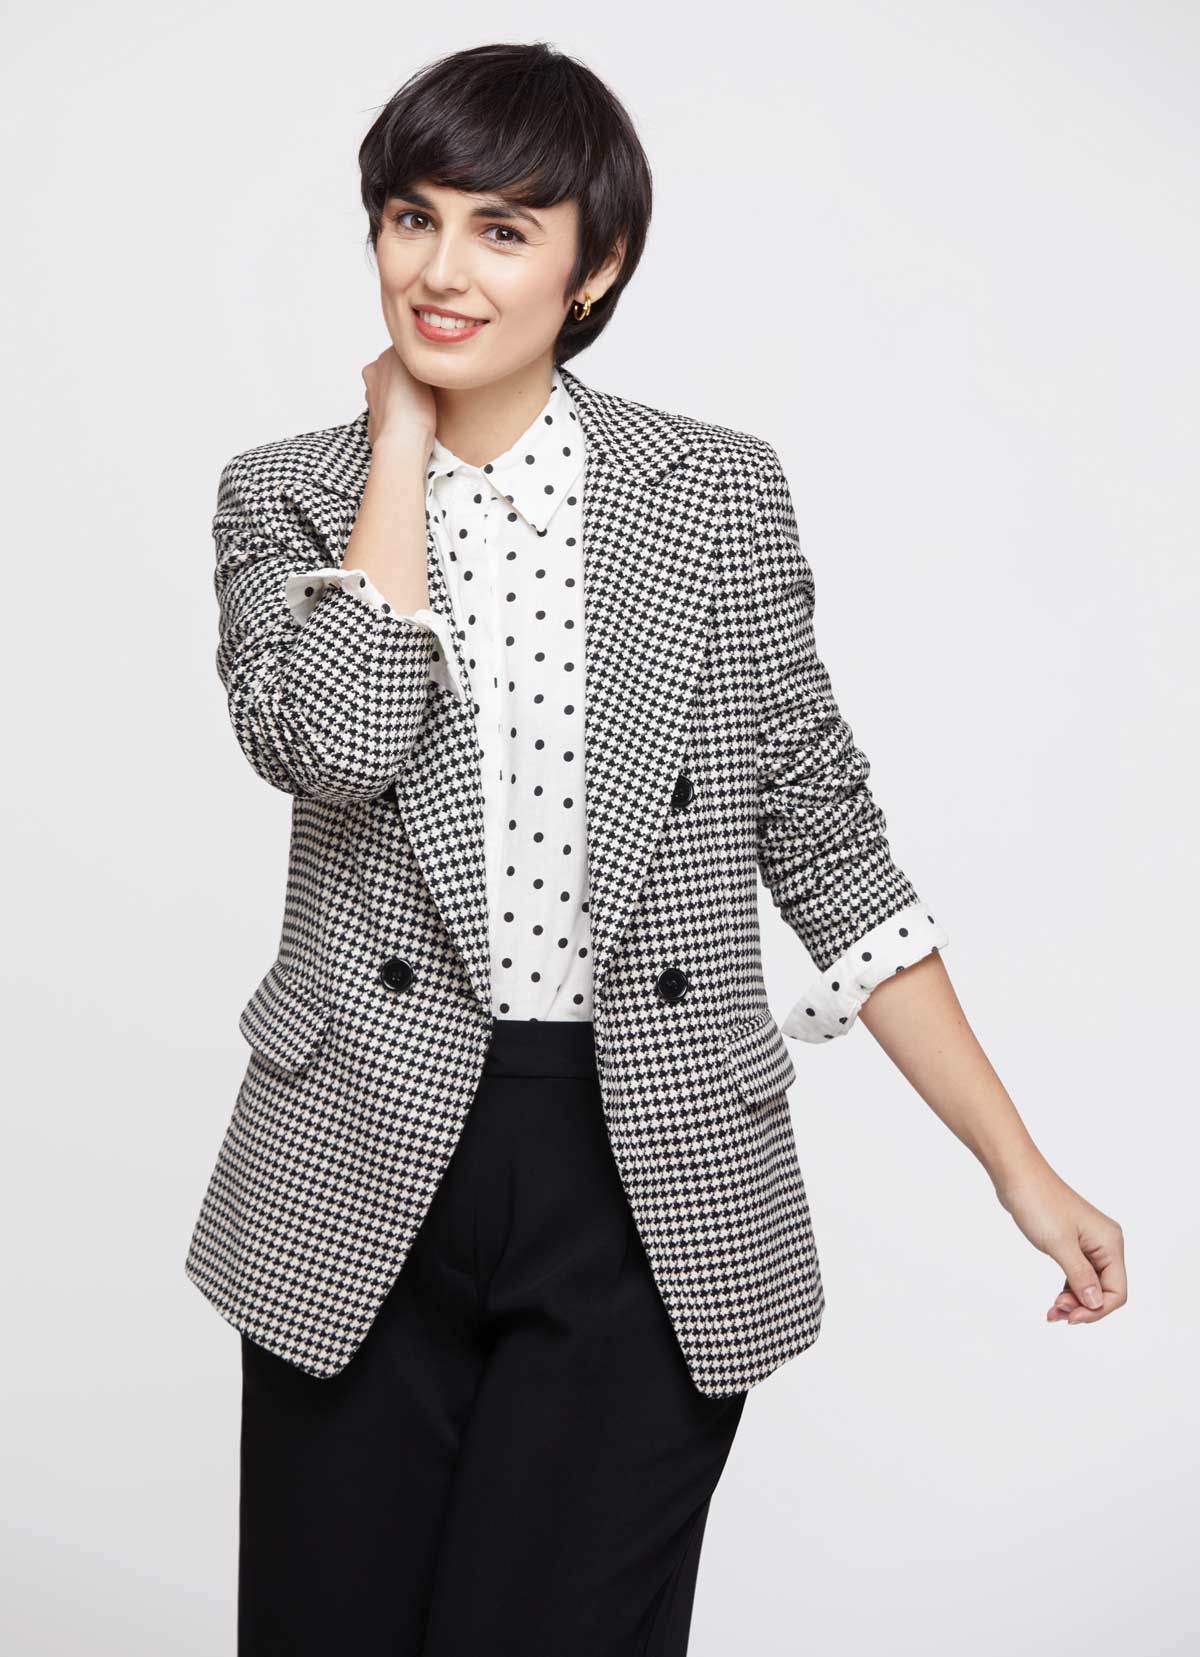 mix houndstooth and polka dots